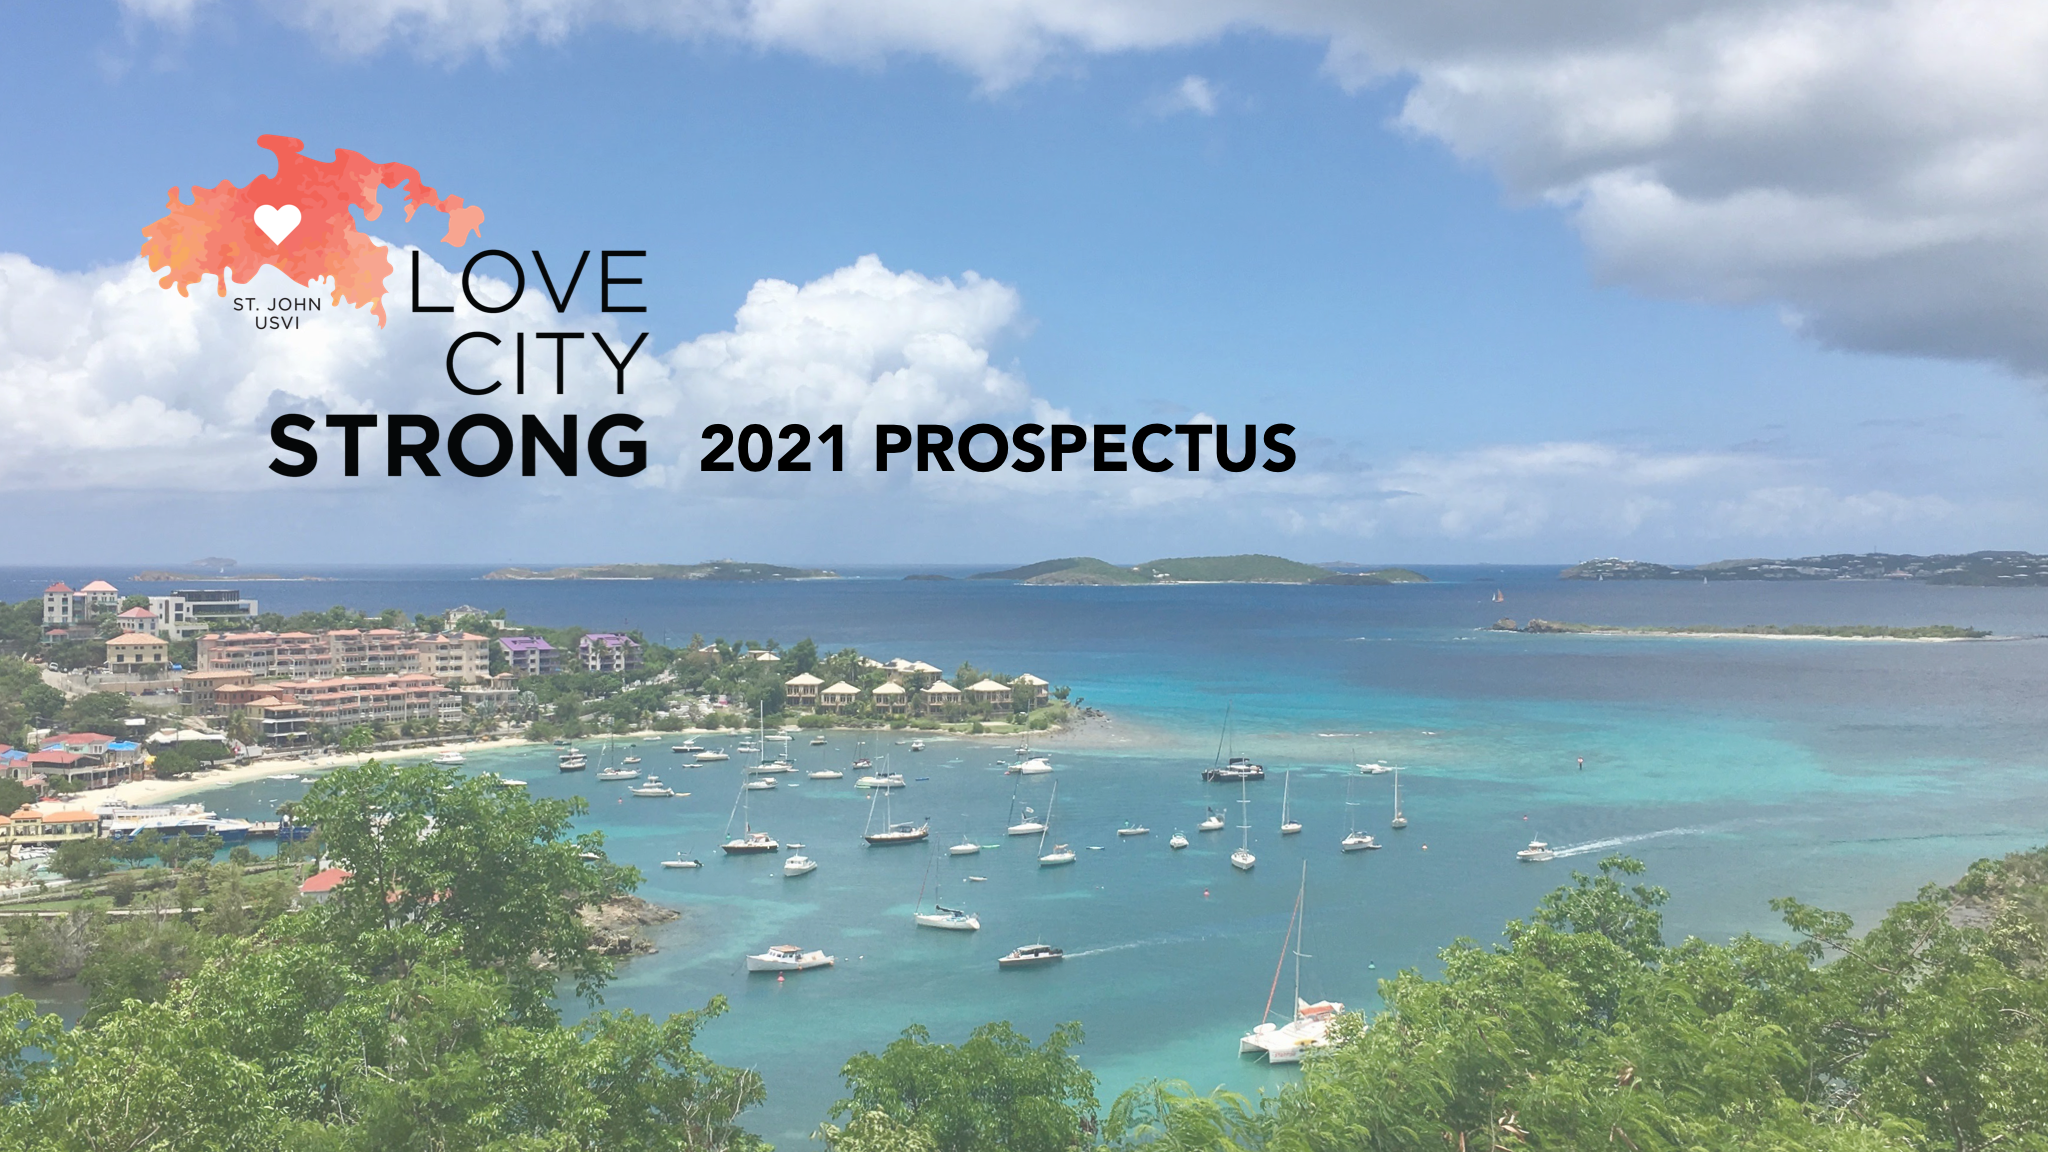 Love City Strong 2021 Prospectus Release